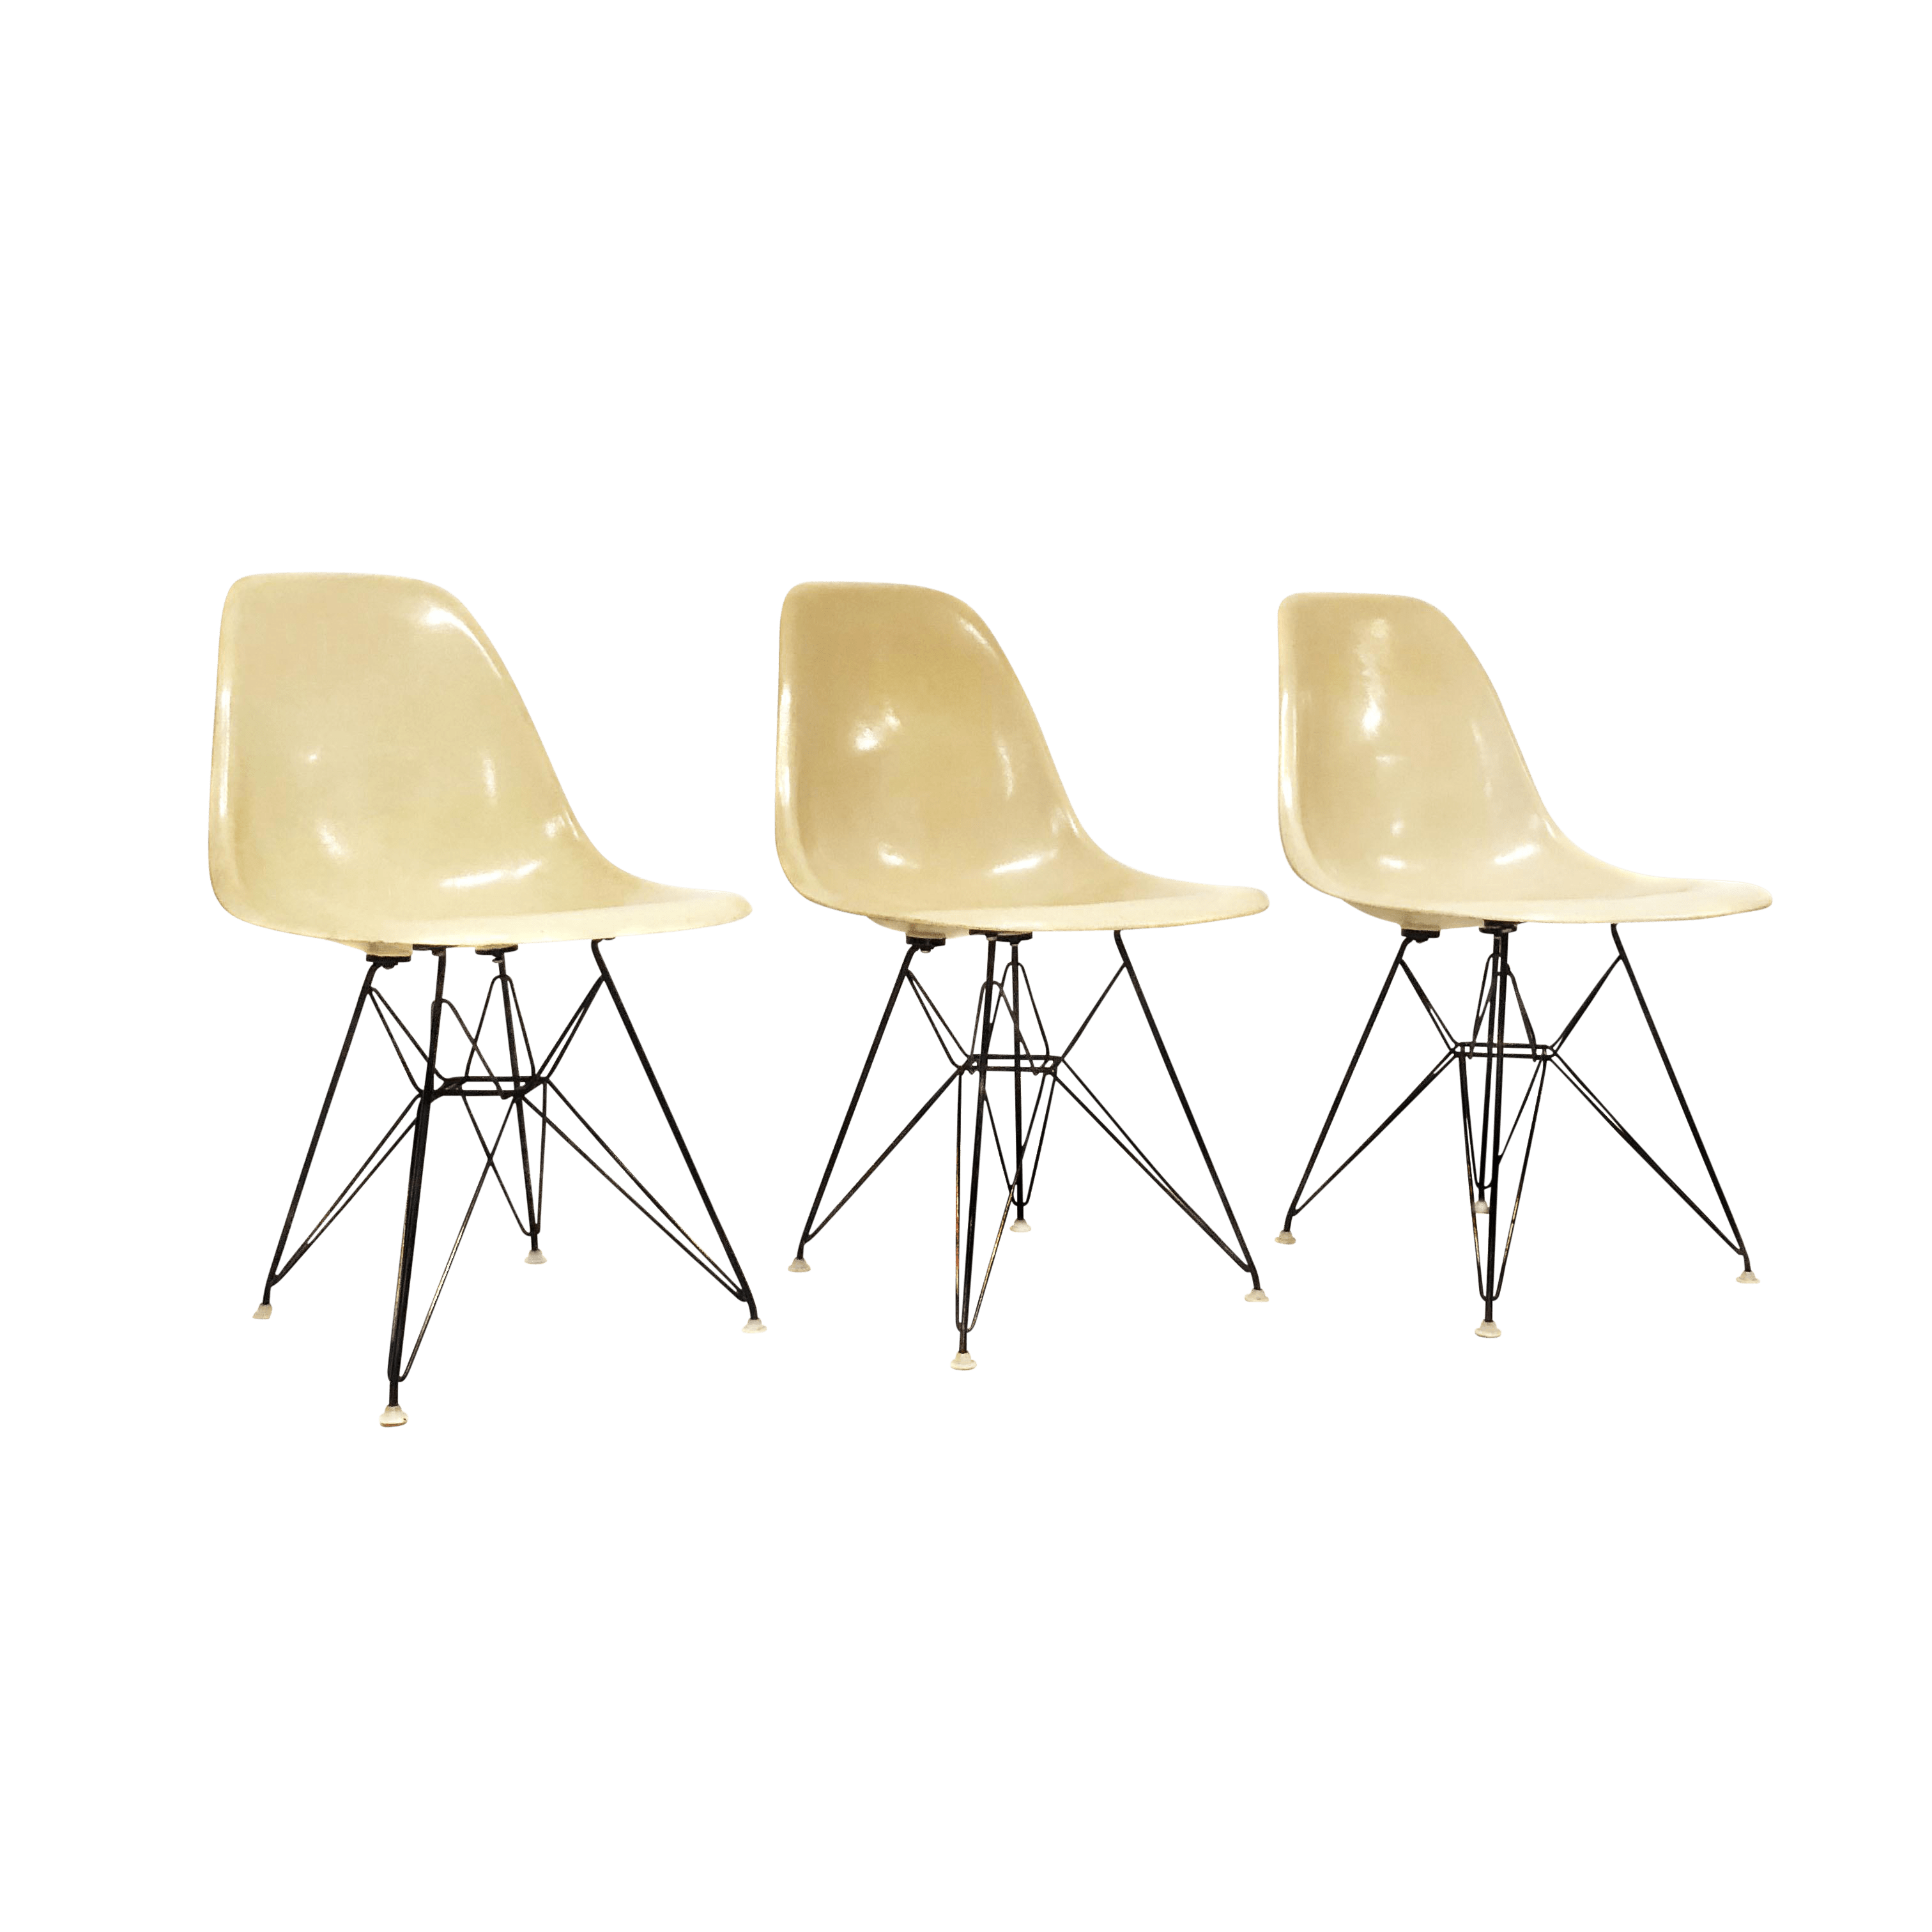 Eames Eiffel Mid Century Modern Signed Charles Eames For Herman Miller Eiffel Shell Chair